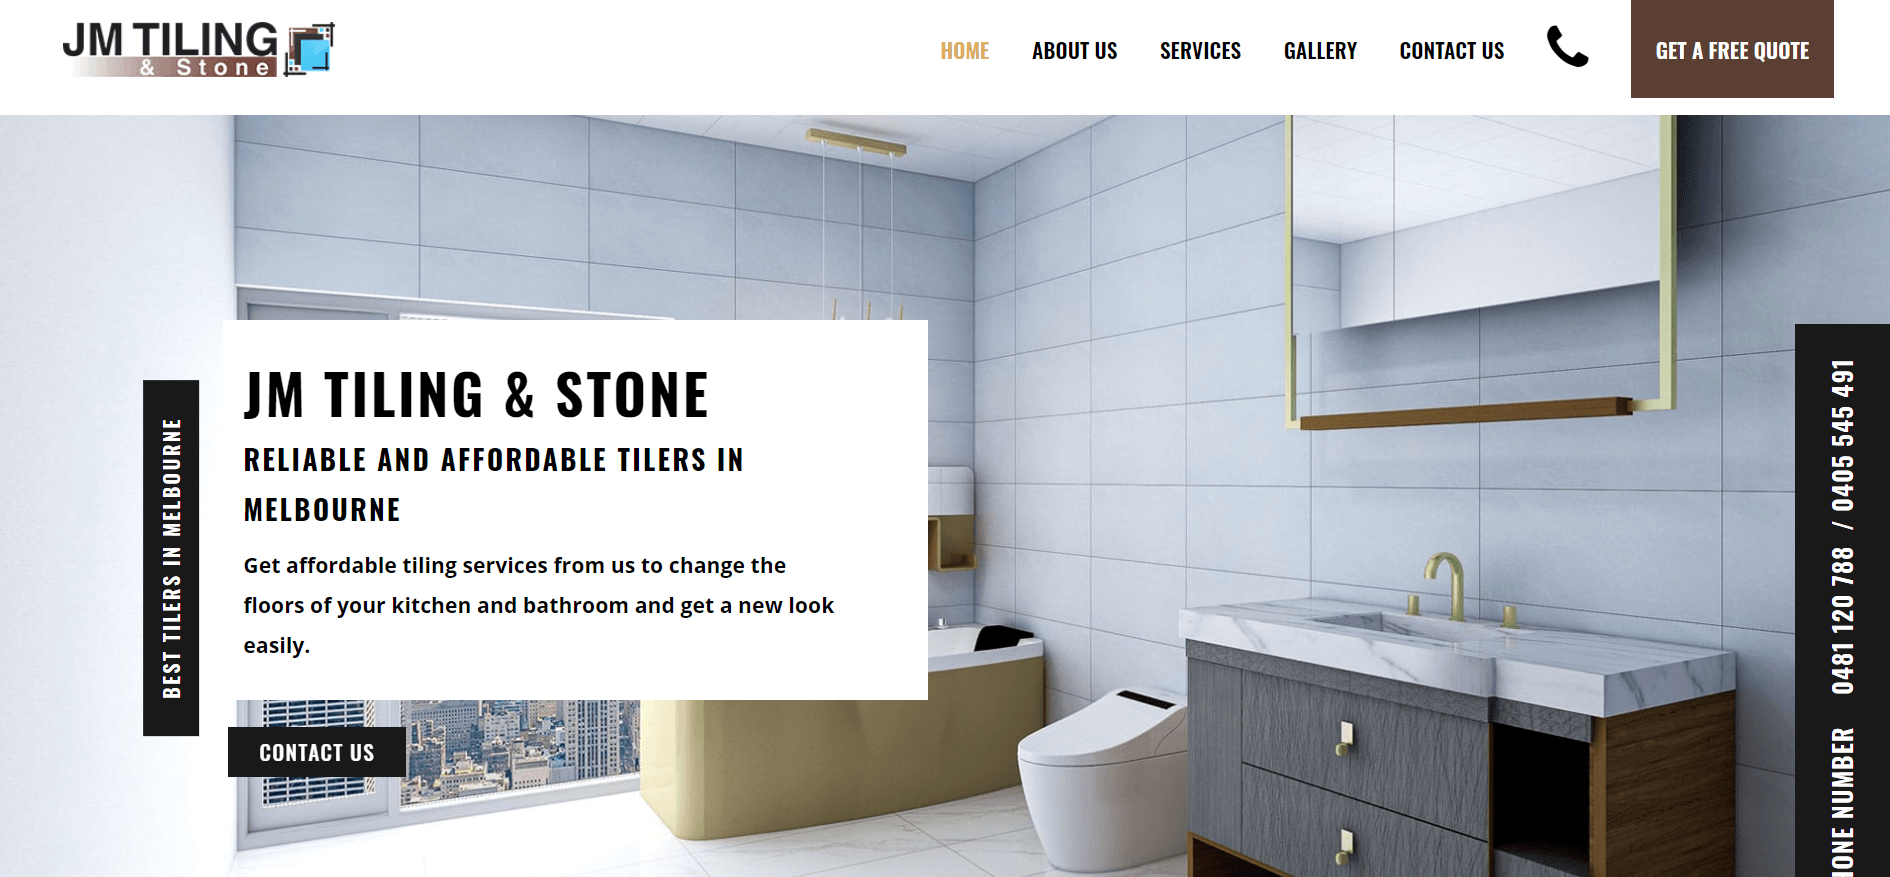 jm tiling and stone